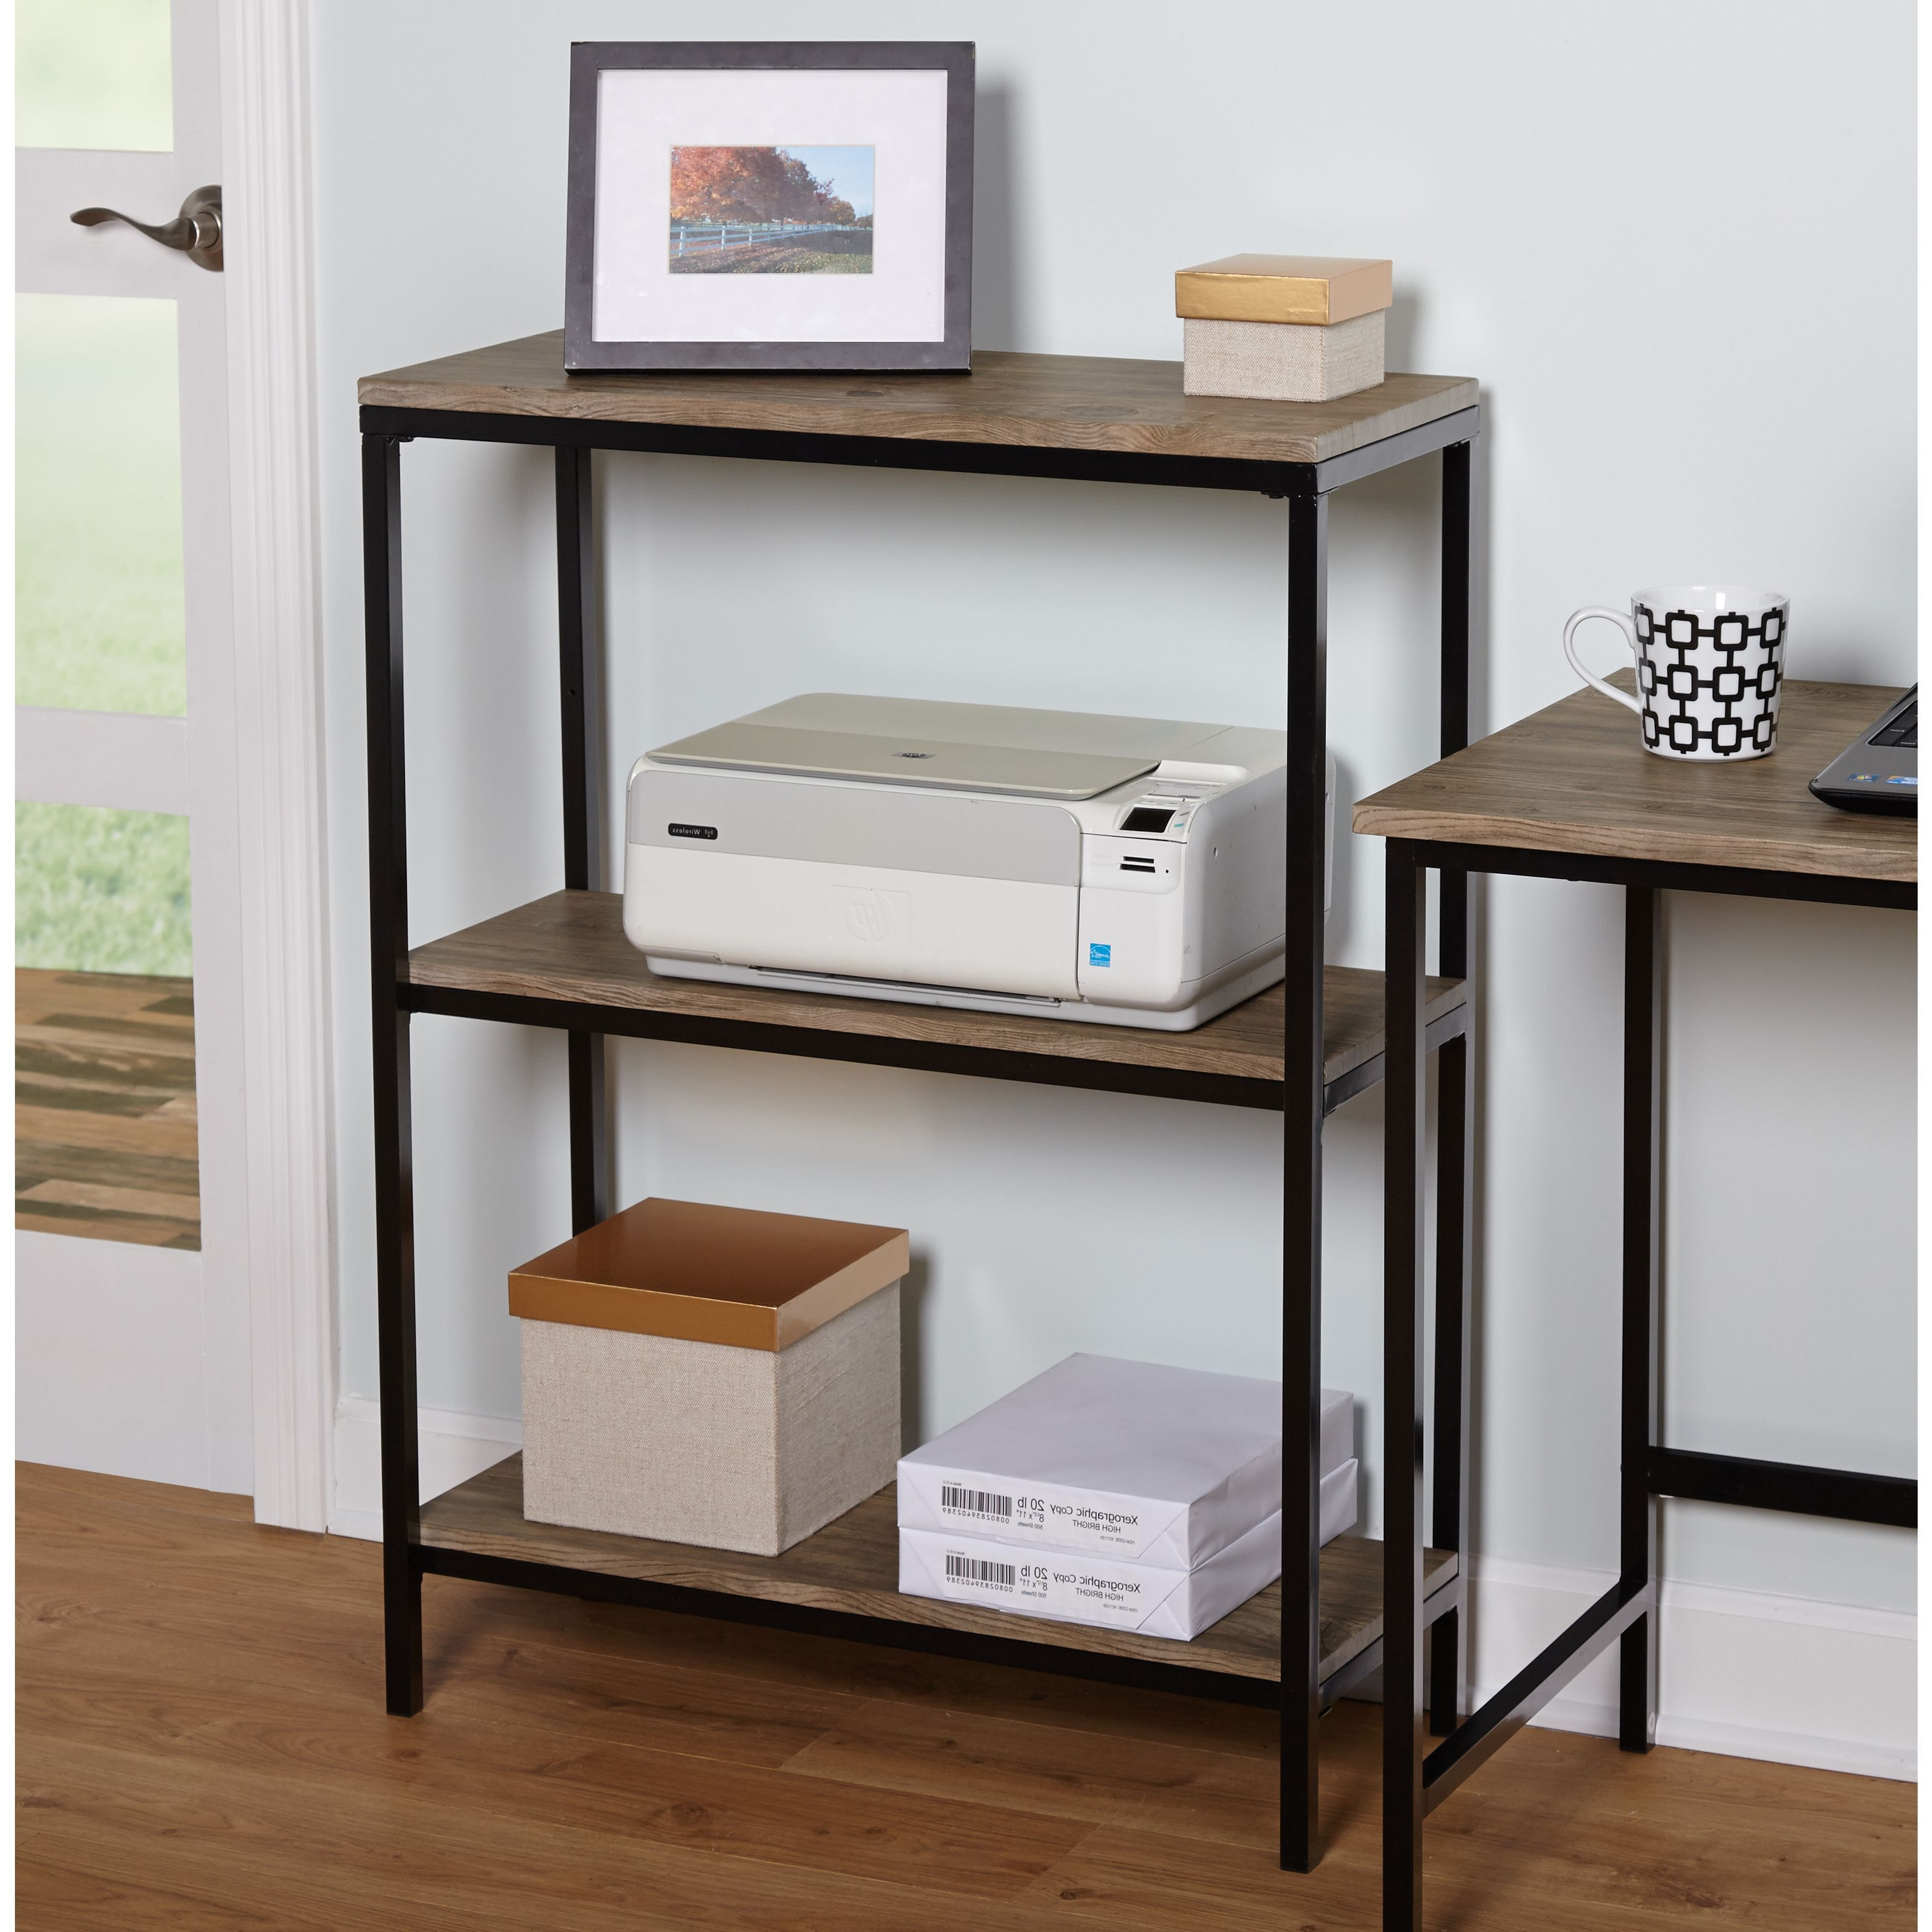 The Piazza 3 Tier Bookshelf From Simple Living Features A Bold Black For Mix Patina Metal Frame Console Tables (View 14 of 20)